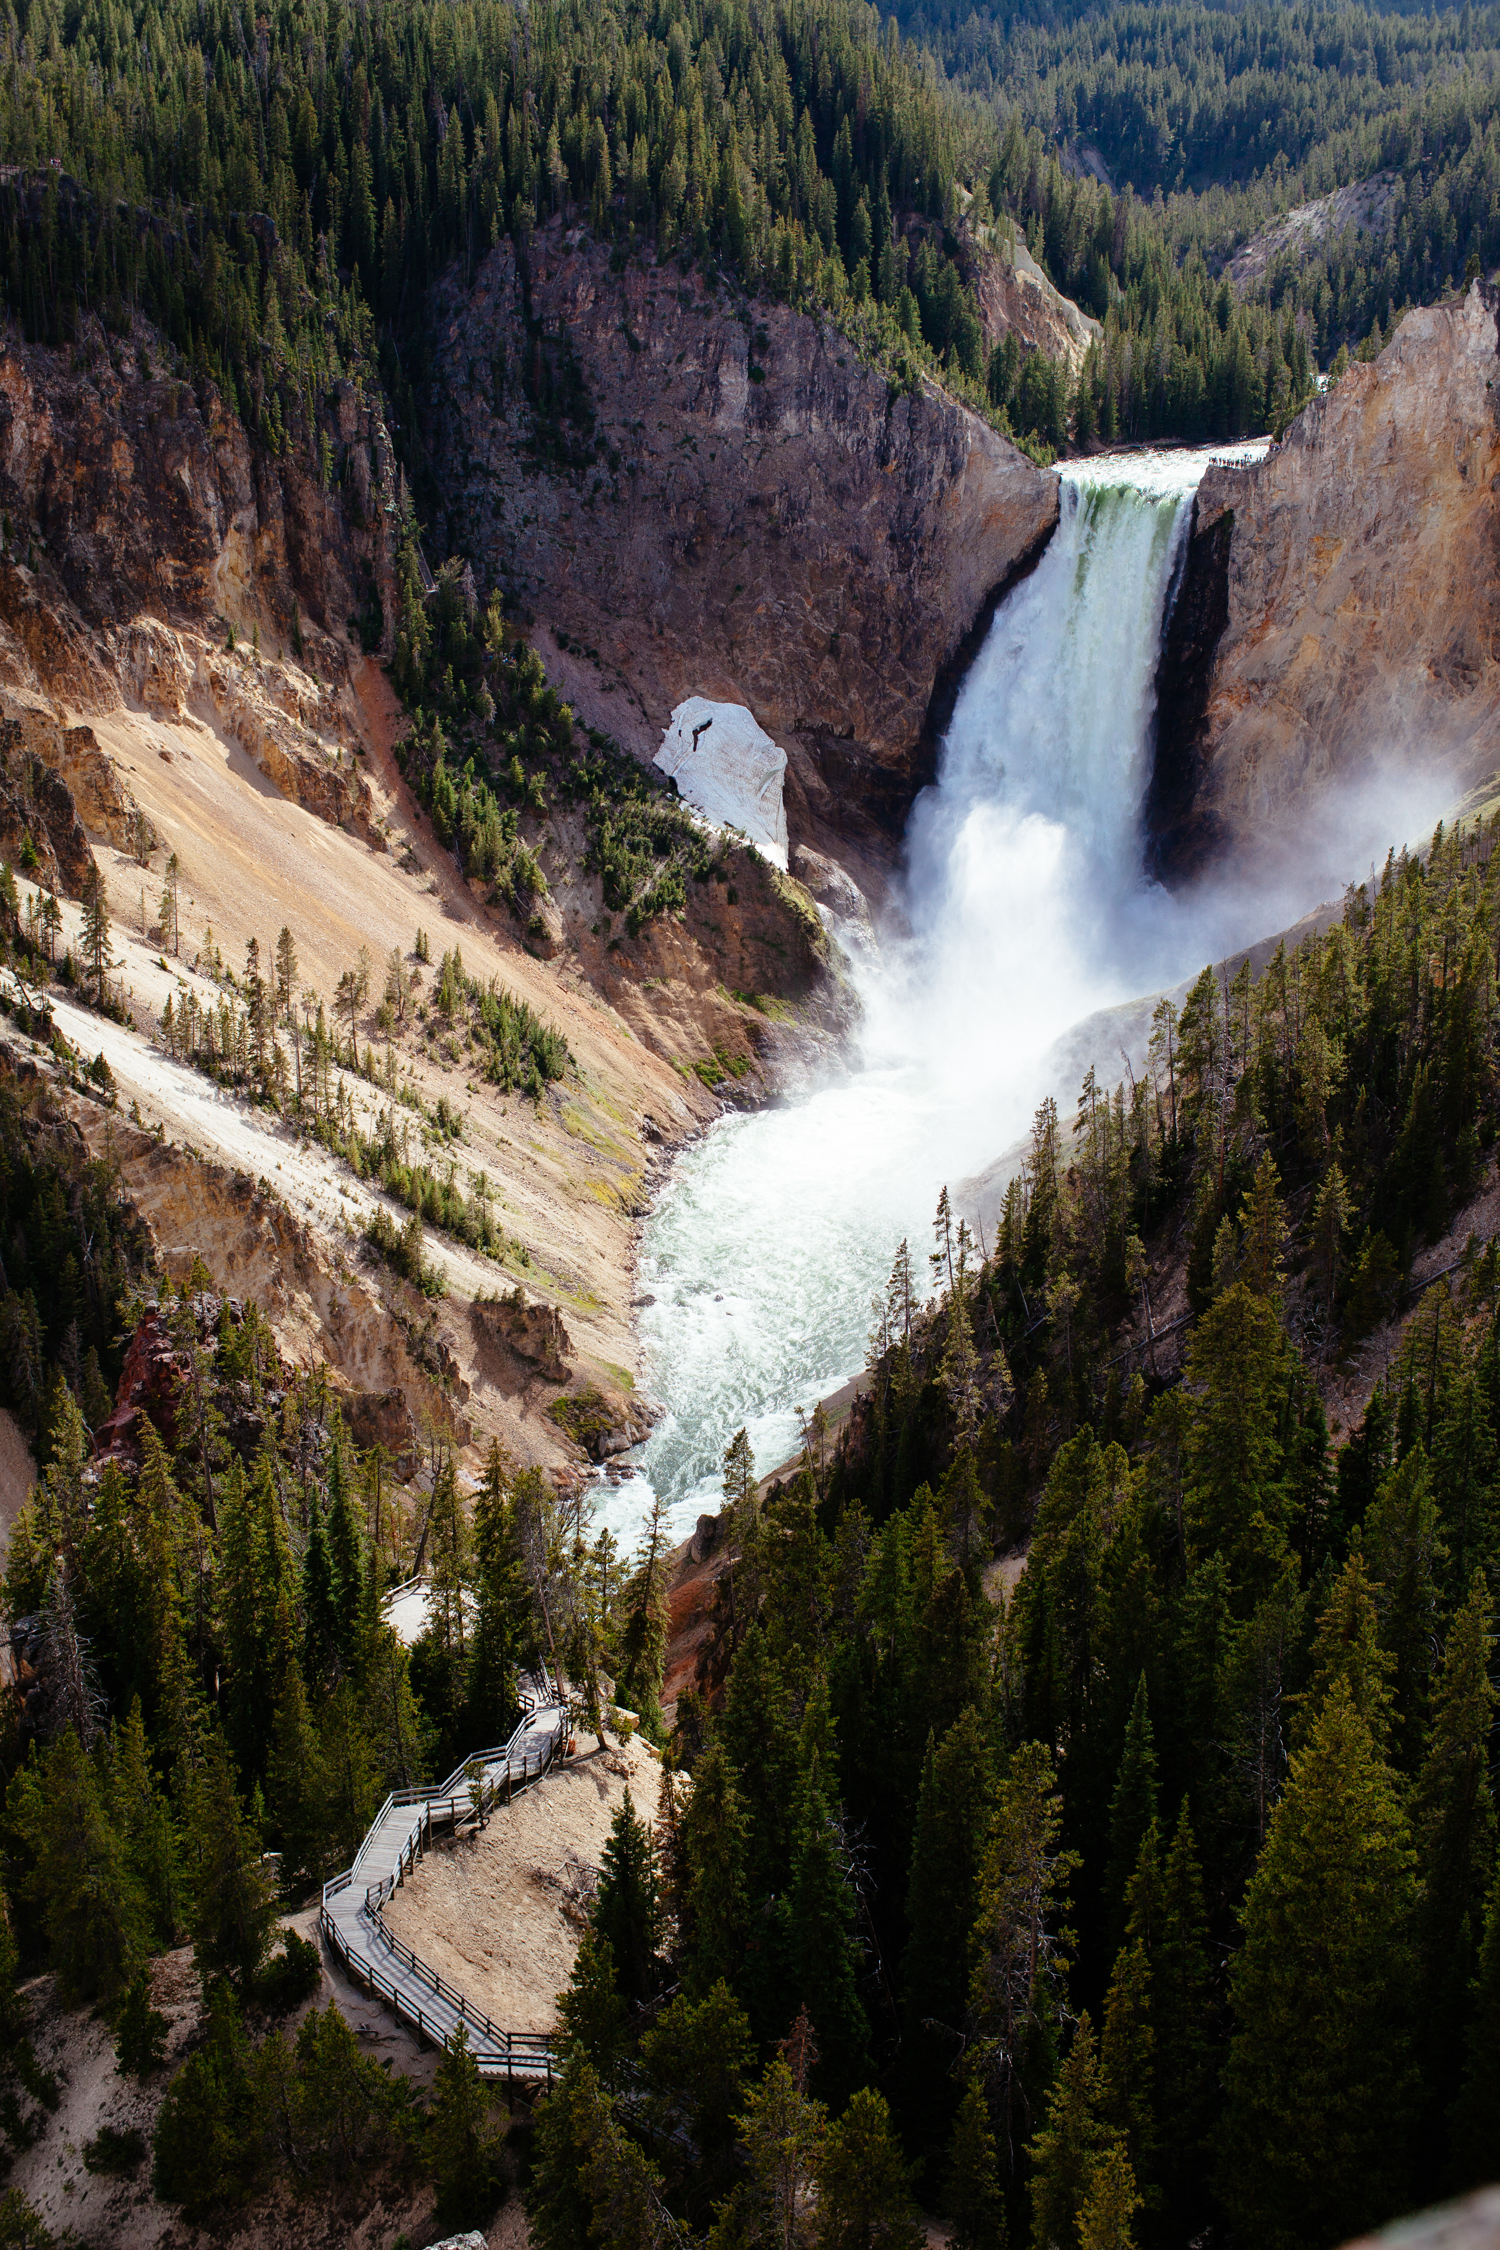 amber_byrne_mahoney_collective_quarterly_magazine_print_travel_lifestyle_montant_yellowstone_national_park_007.jpg